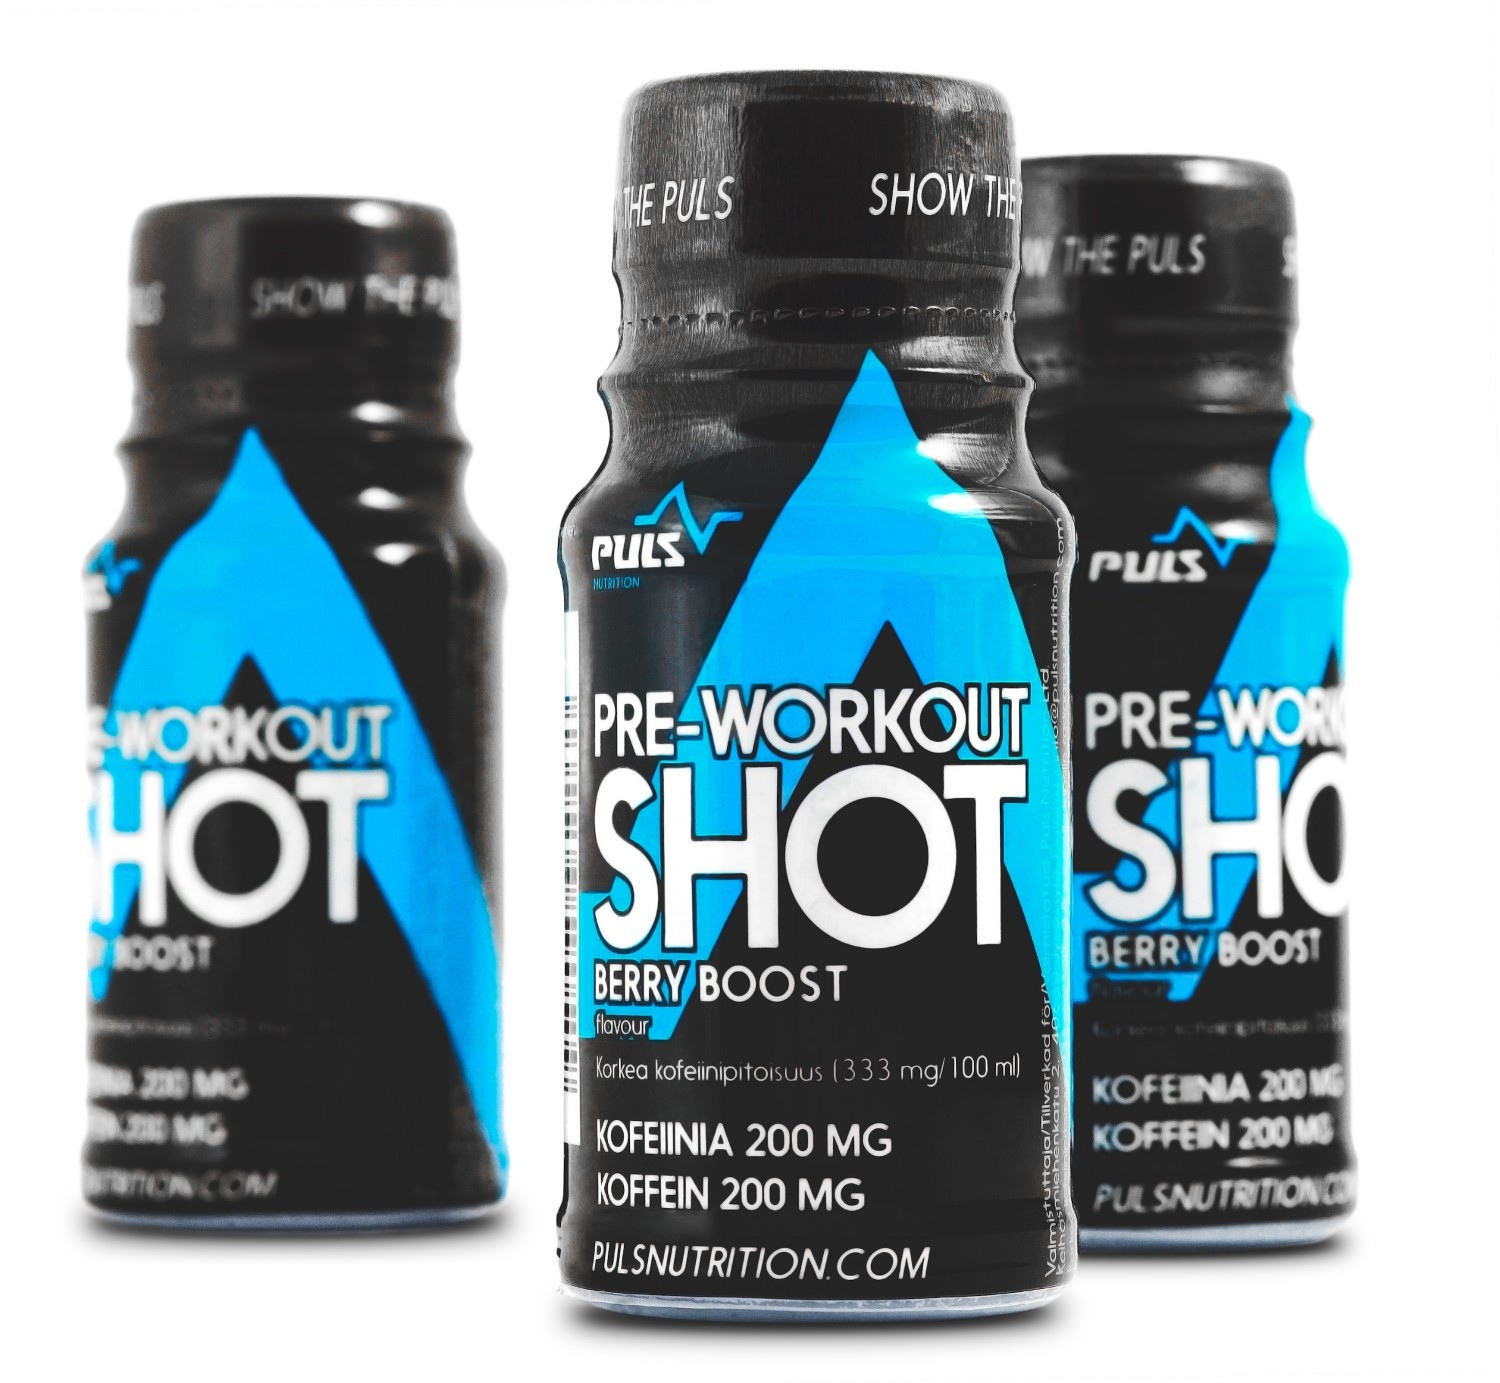 Pre-Workout Shot (Puls Nutrition)